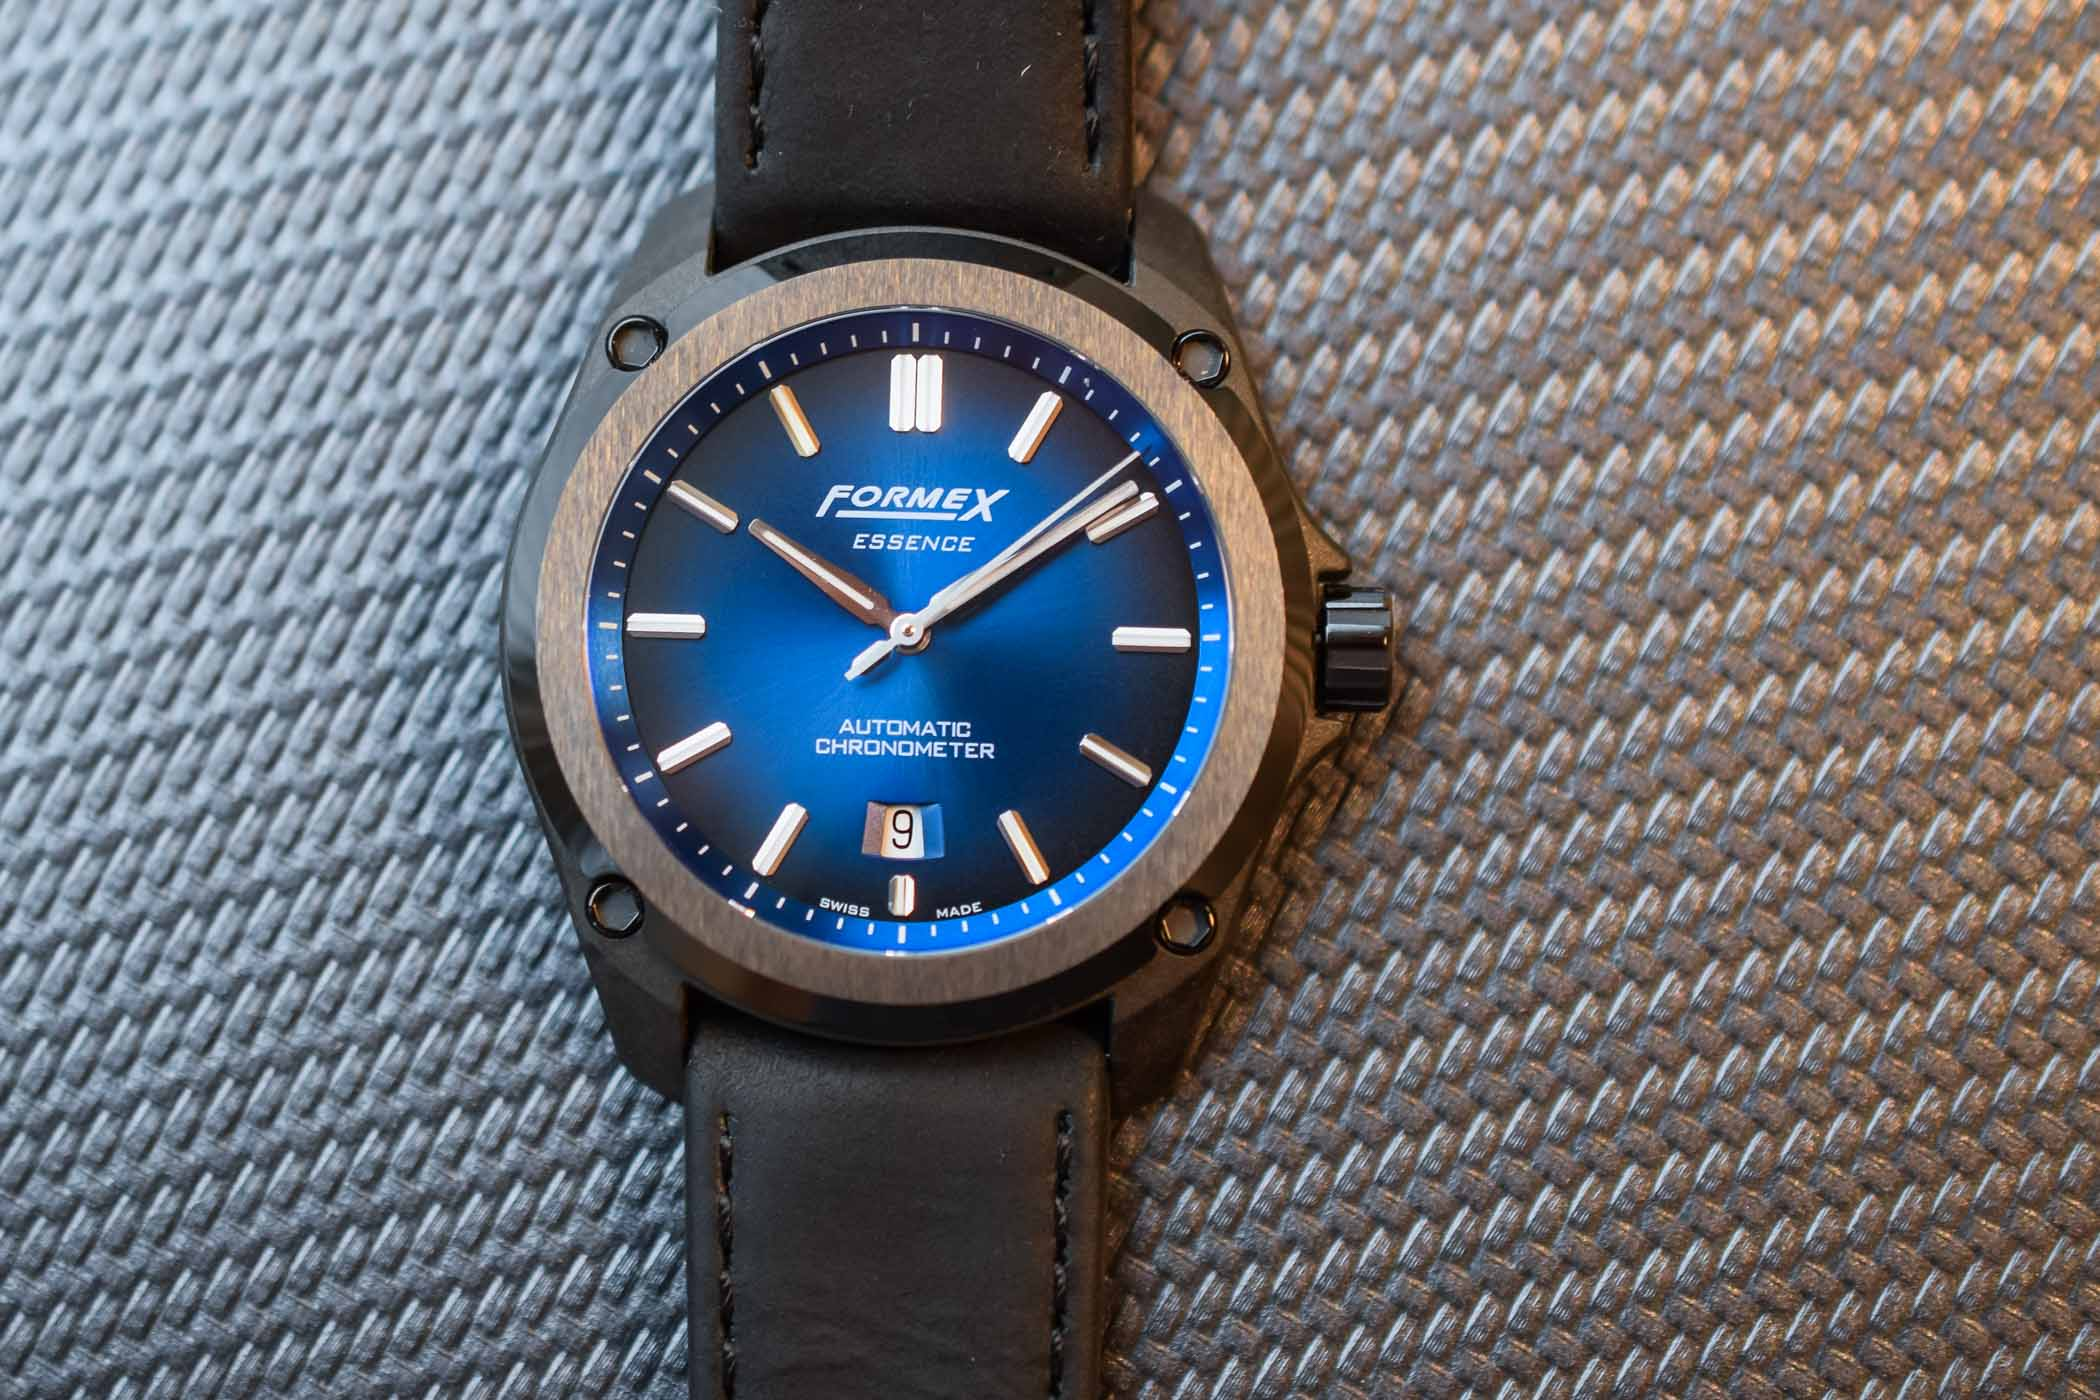 Formex Essence Leggera - Chronometer Certified Carbon Watch Value Proposition